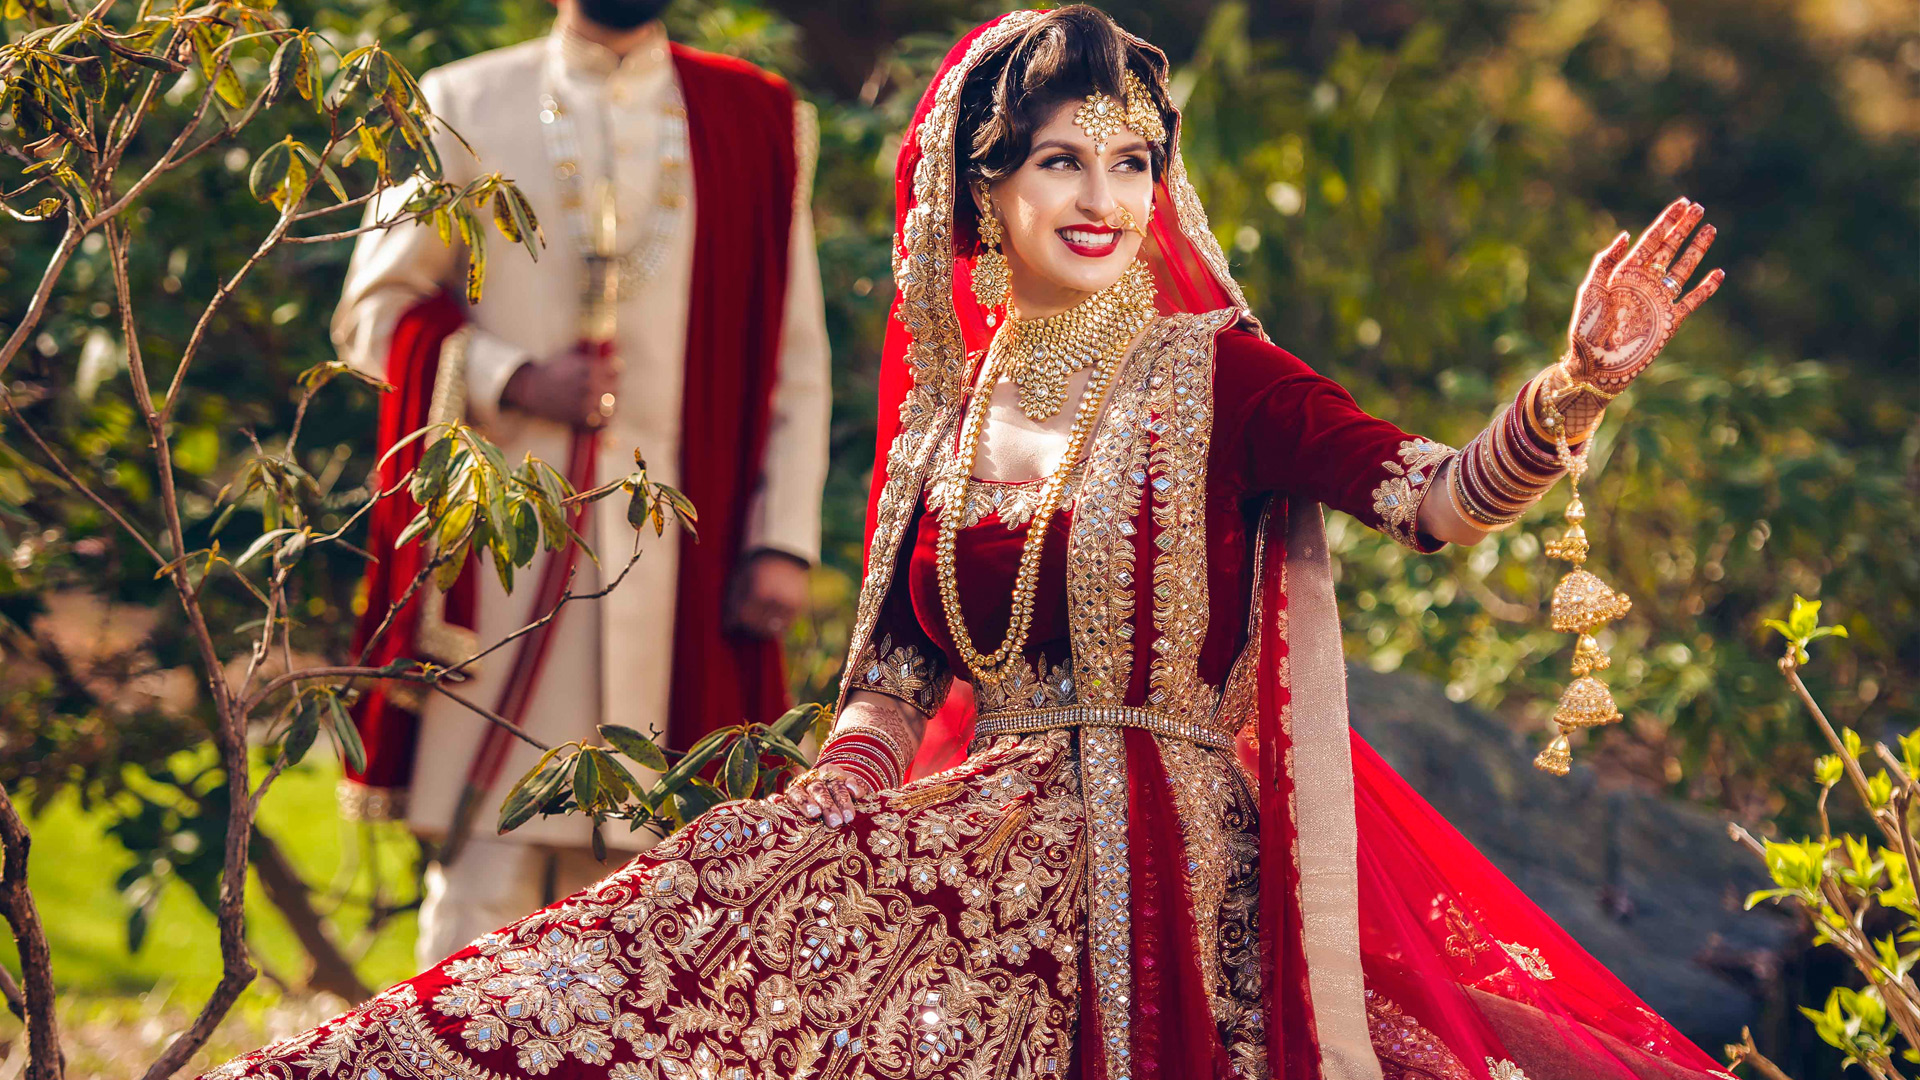 marriage dulhan most beautiful bride, world, country, bride around the world, wedding dresses, wedding gowns, wedding saree rituals, bridal dresses, bridal headgear africa bride afgani nressed rituals wedding ceremonies customs folk style weddingepalese morocoo indian bride russia traditional wedding iceland images pictures HD